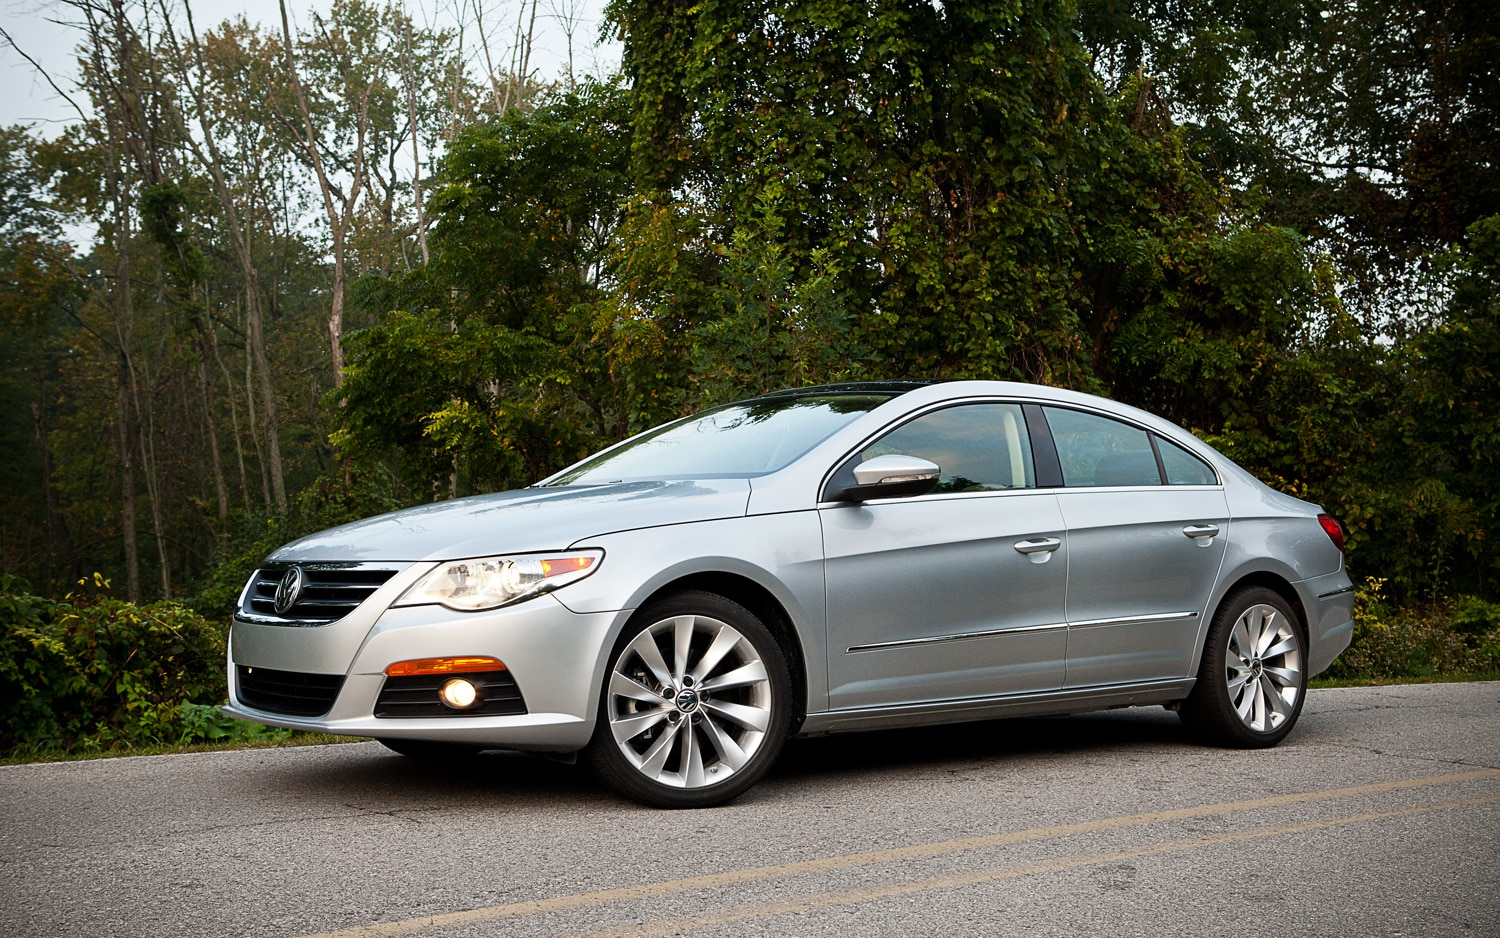 2012 Volkswagen CC LUX Limited Front Left Side View1